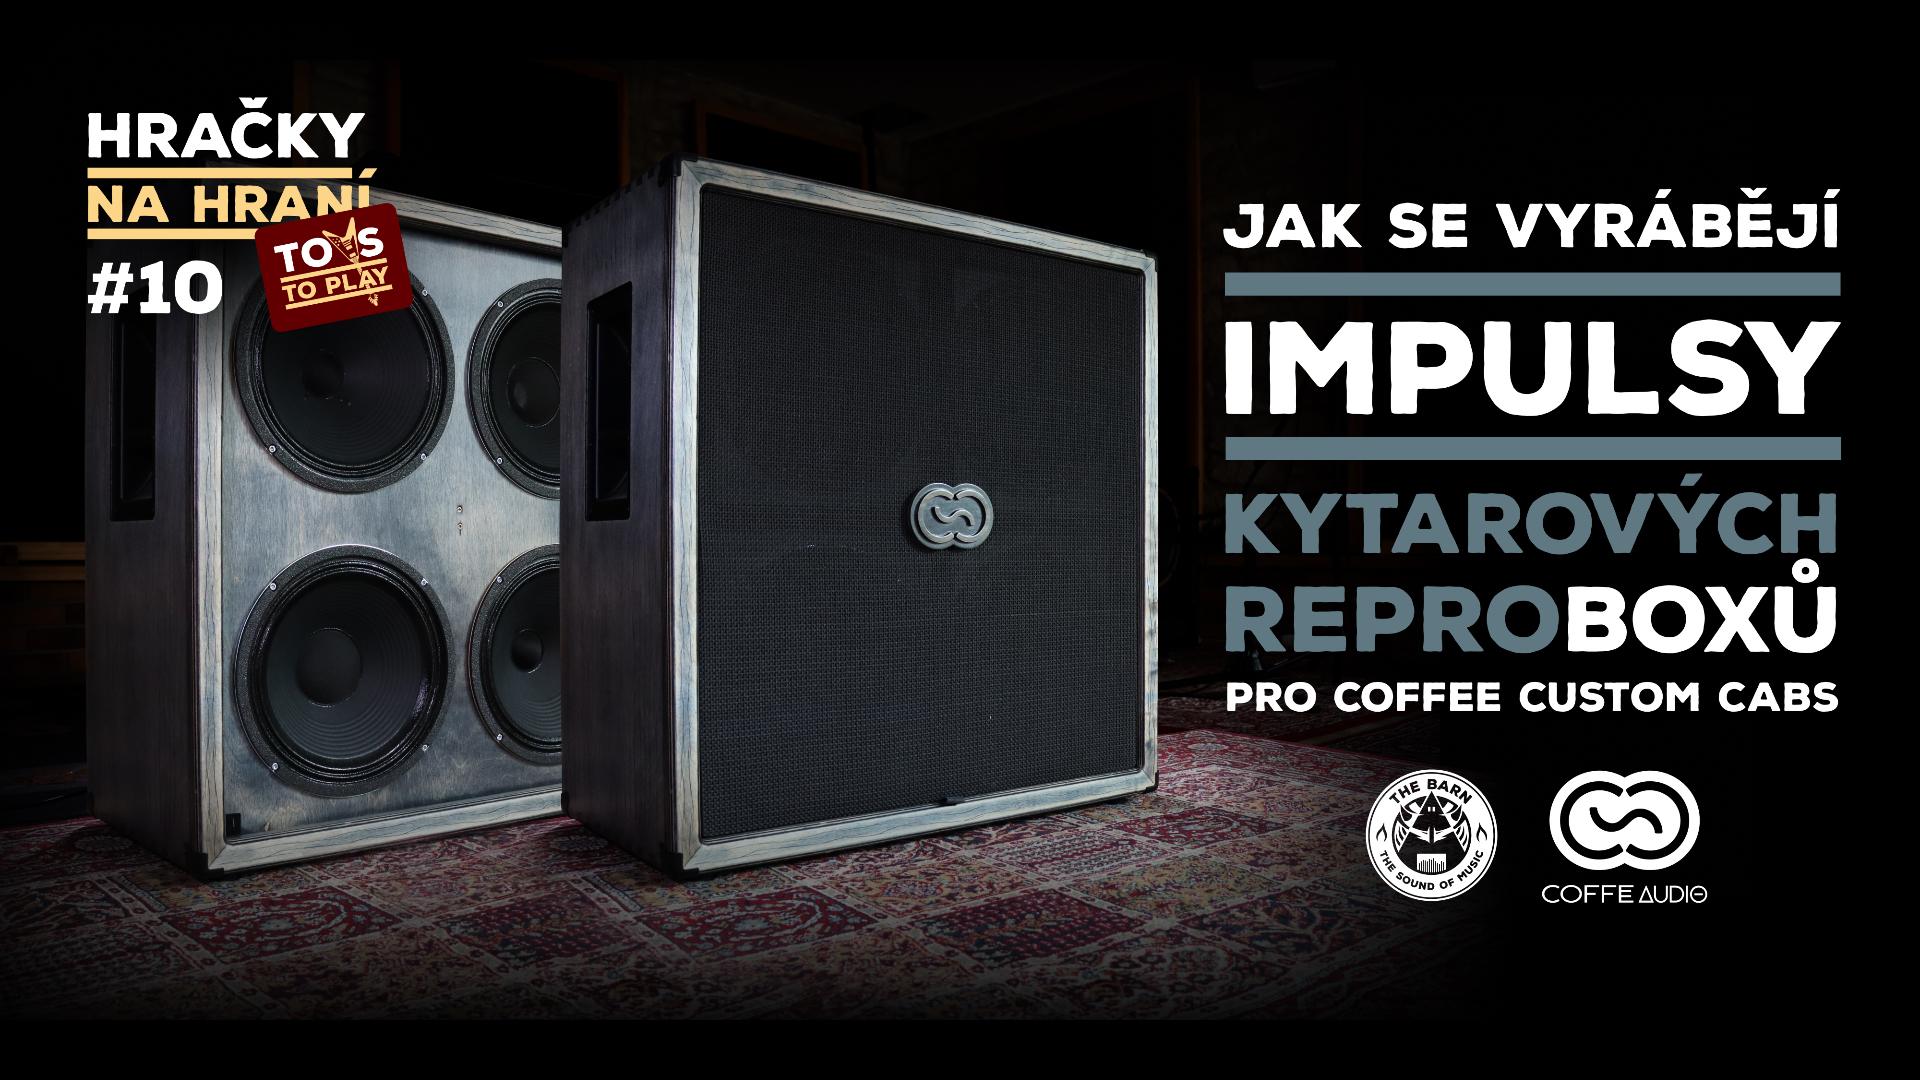 Toys to Play #10 - Creation of impulse responses (IR) of Coffee Custom Cabs LUNGO 4x12